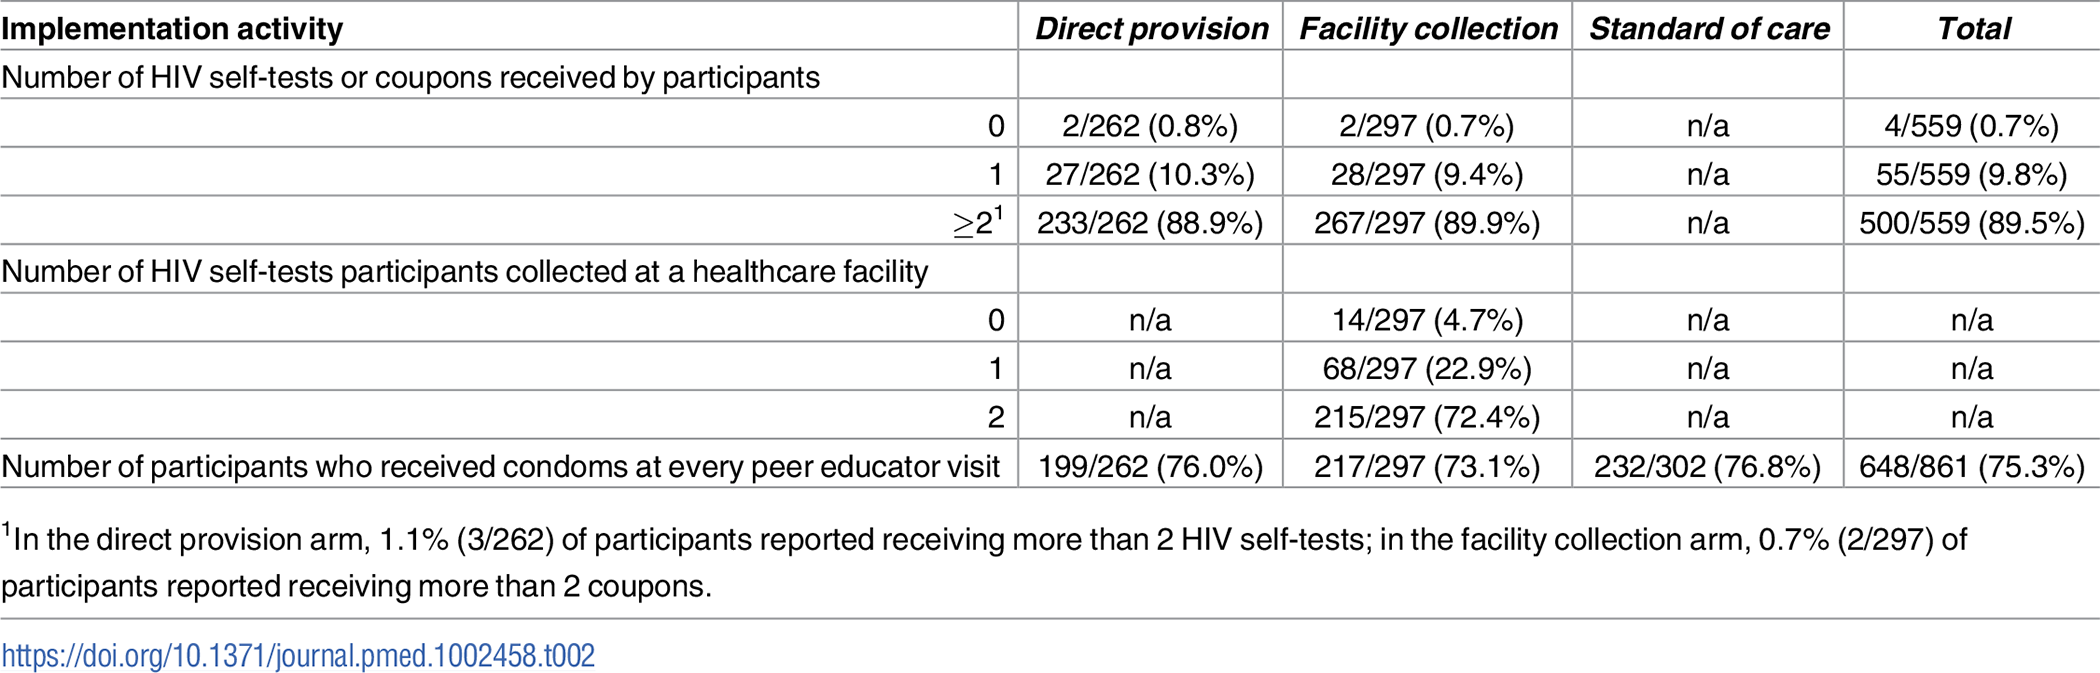 Implementation activities reported by participants at 4 months.